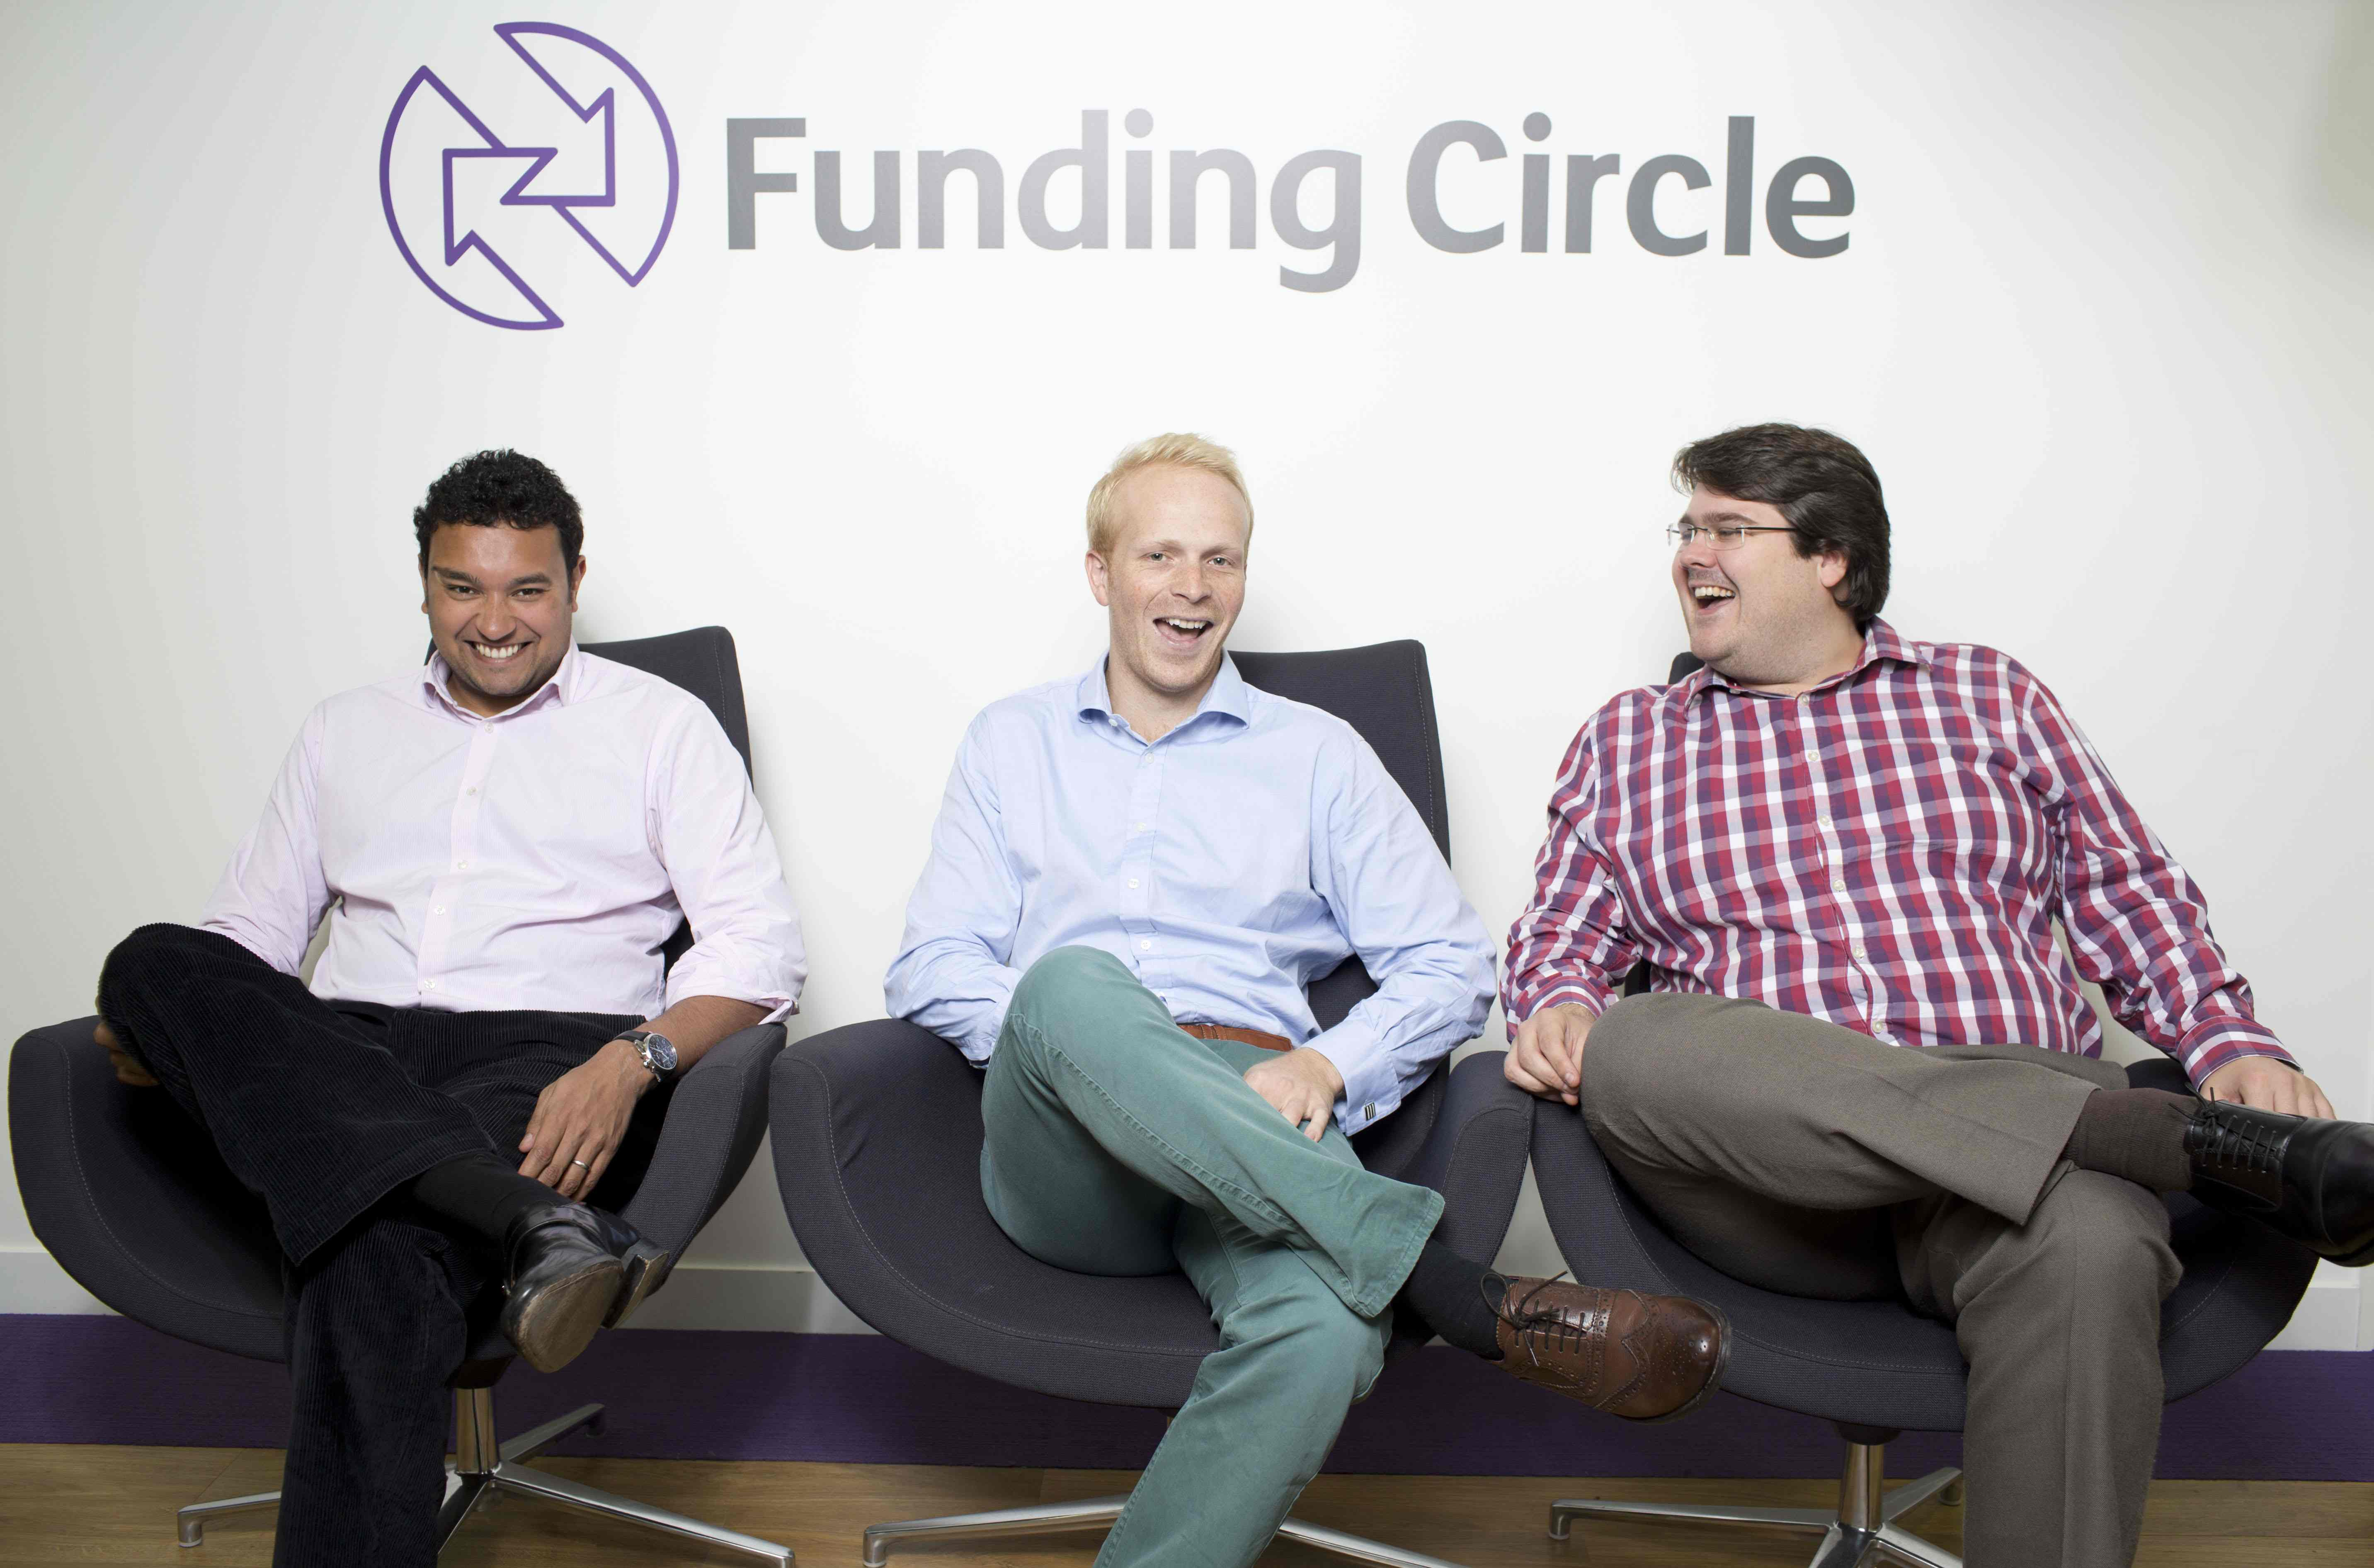 BlackRock Invested £12.7m in Funding Circle Fund